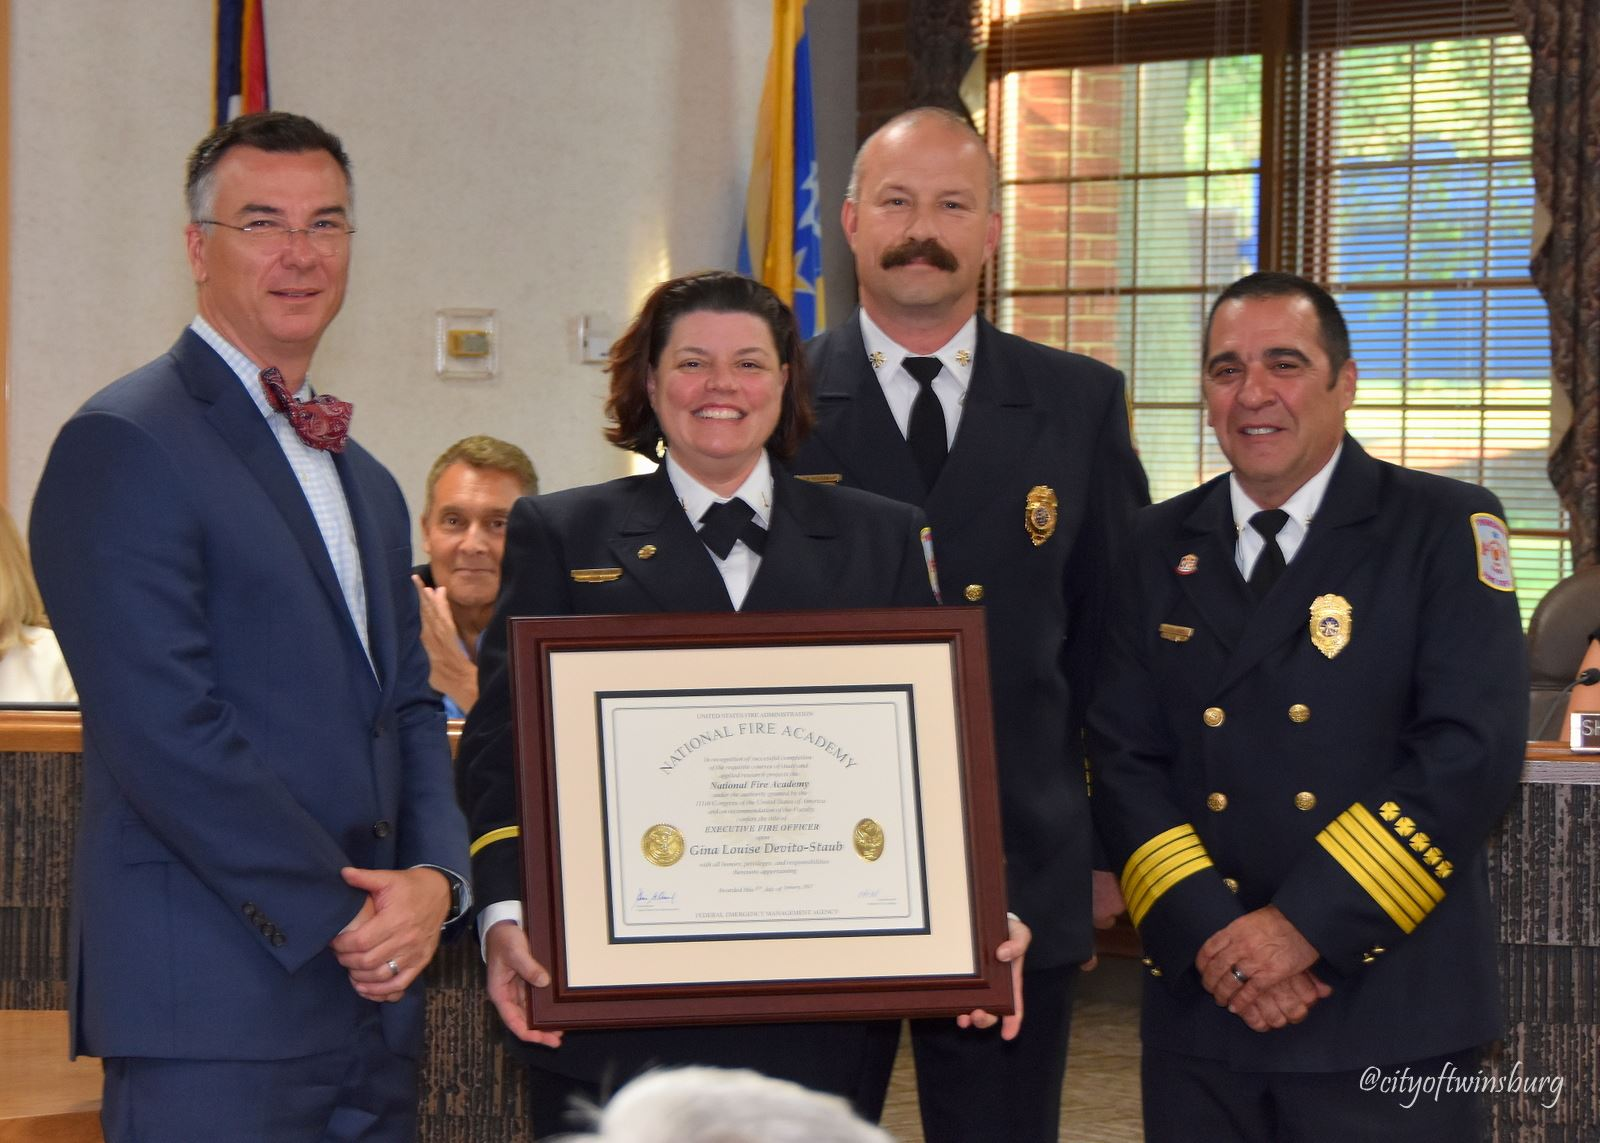 Twinsburg City leaders recognized Lieutenant Gina DeVito-Staub